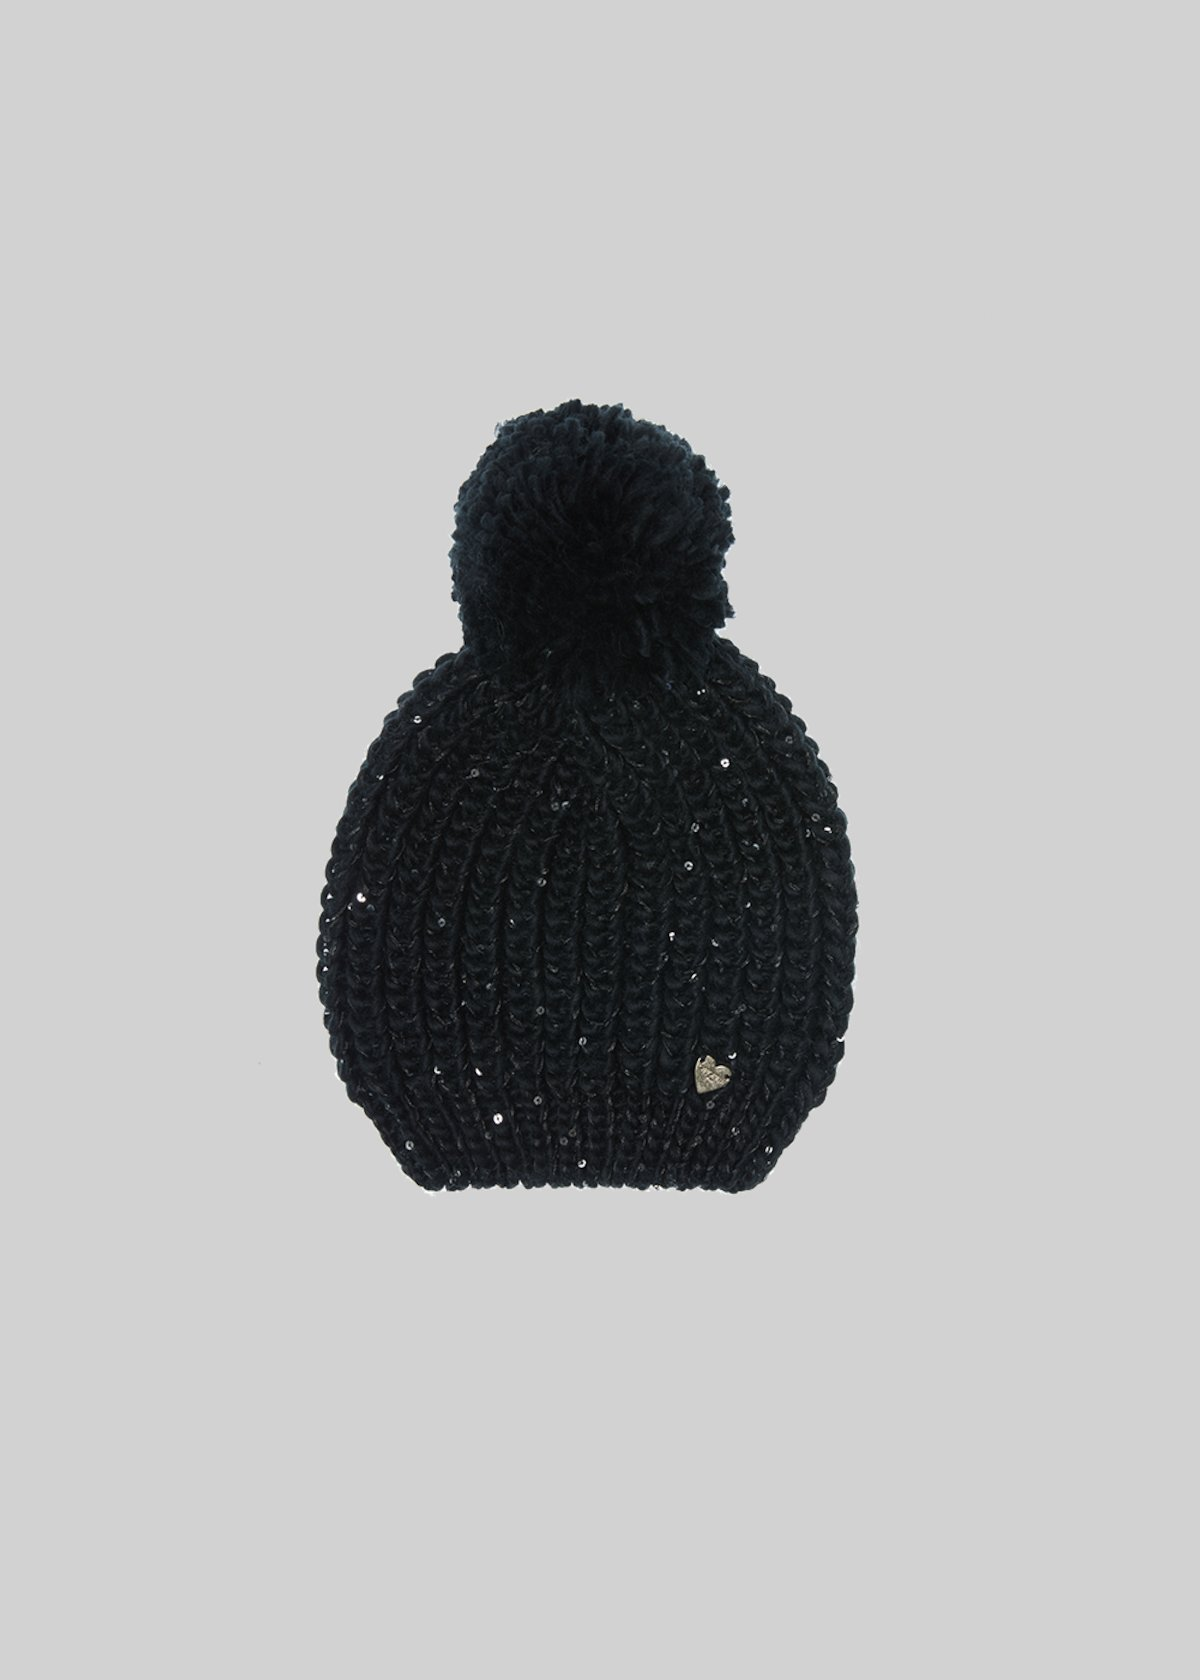 Knitted Carbel hat with sequin detail detail - Black